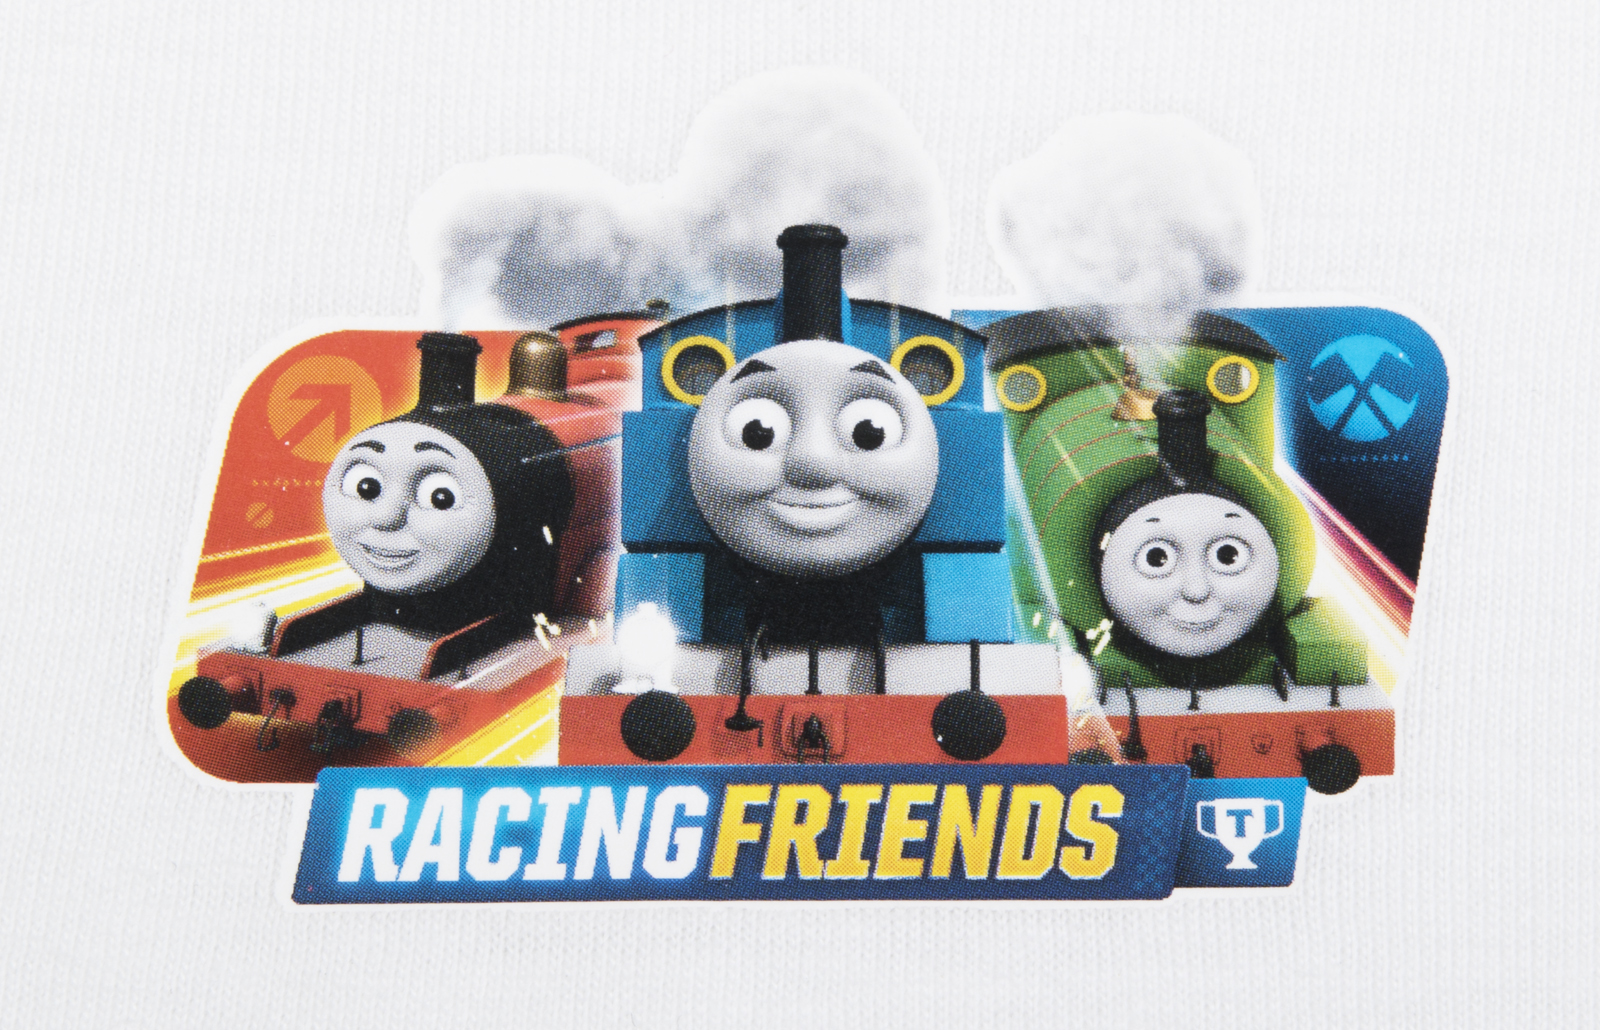 New Thomas Tank Engine Train And Friends 3 Pack Cotton Vests Underwear SALE 3.99